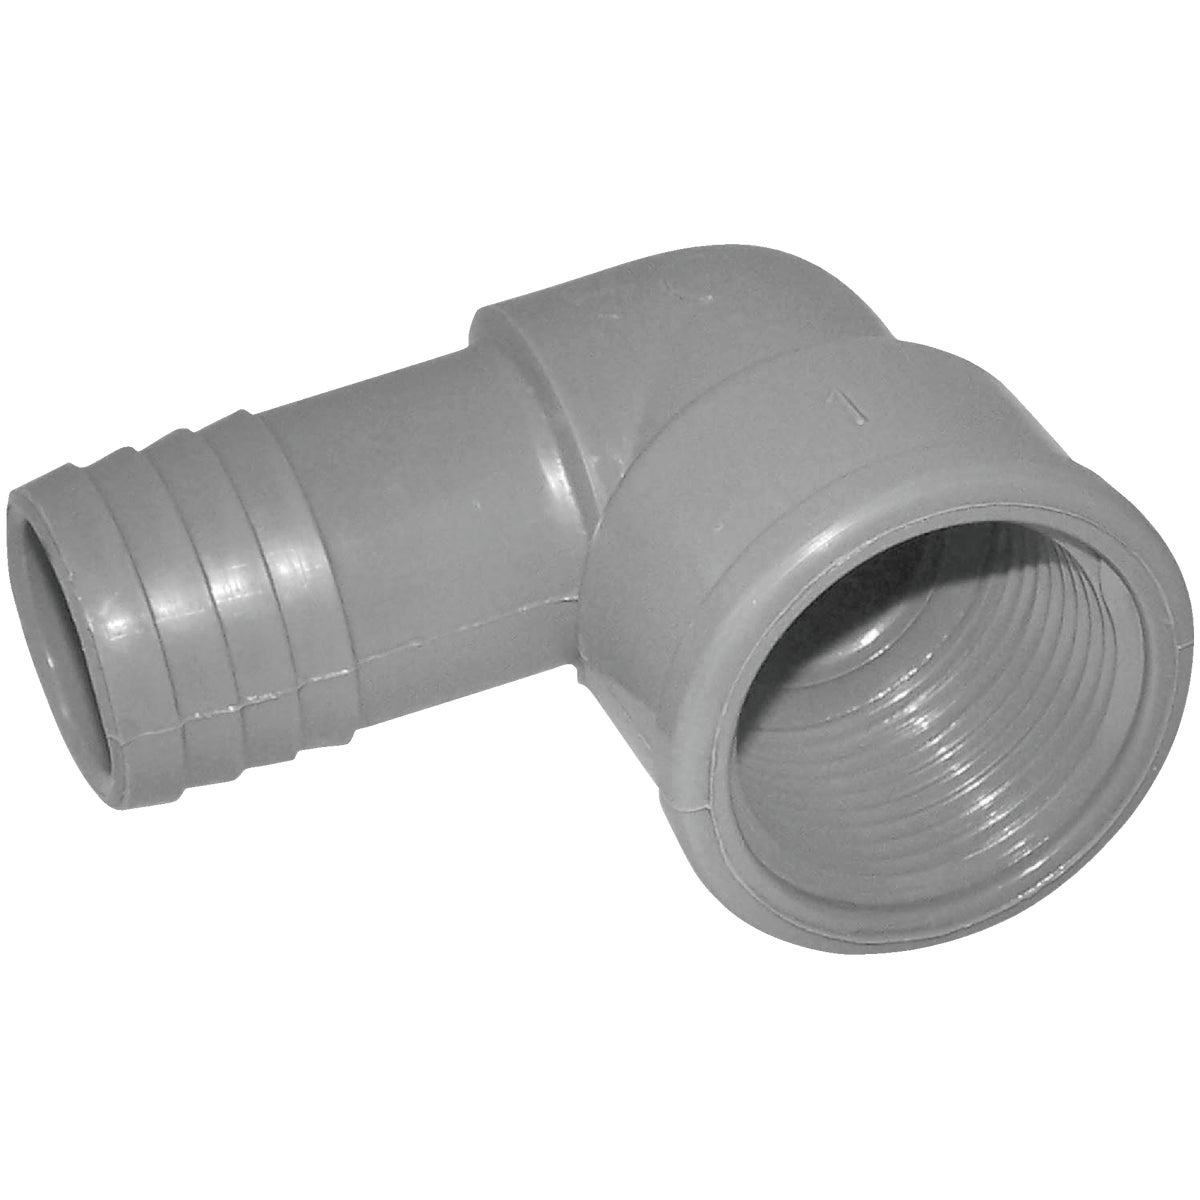 "1"" POLY INSXFIP ELBOW - 353910 by Genova Inc"